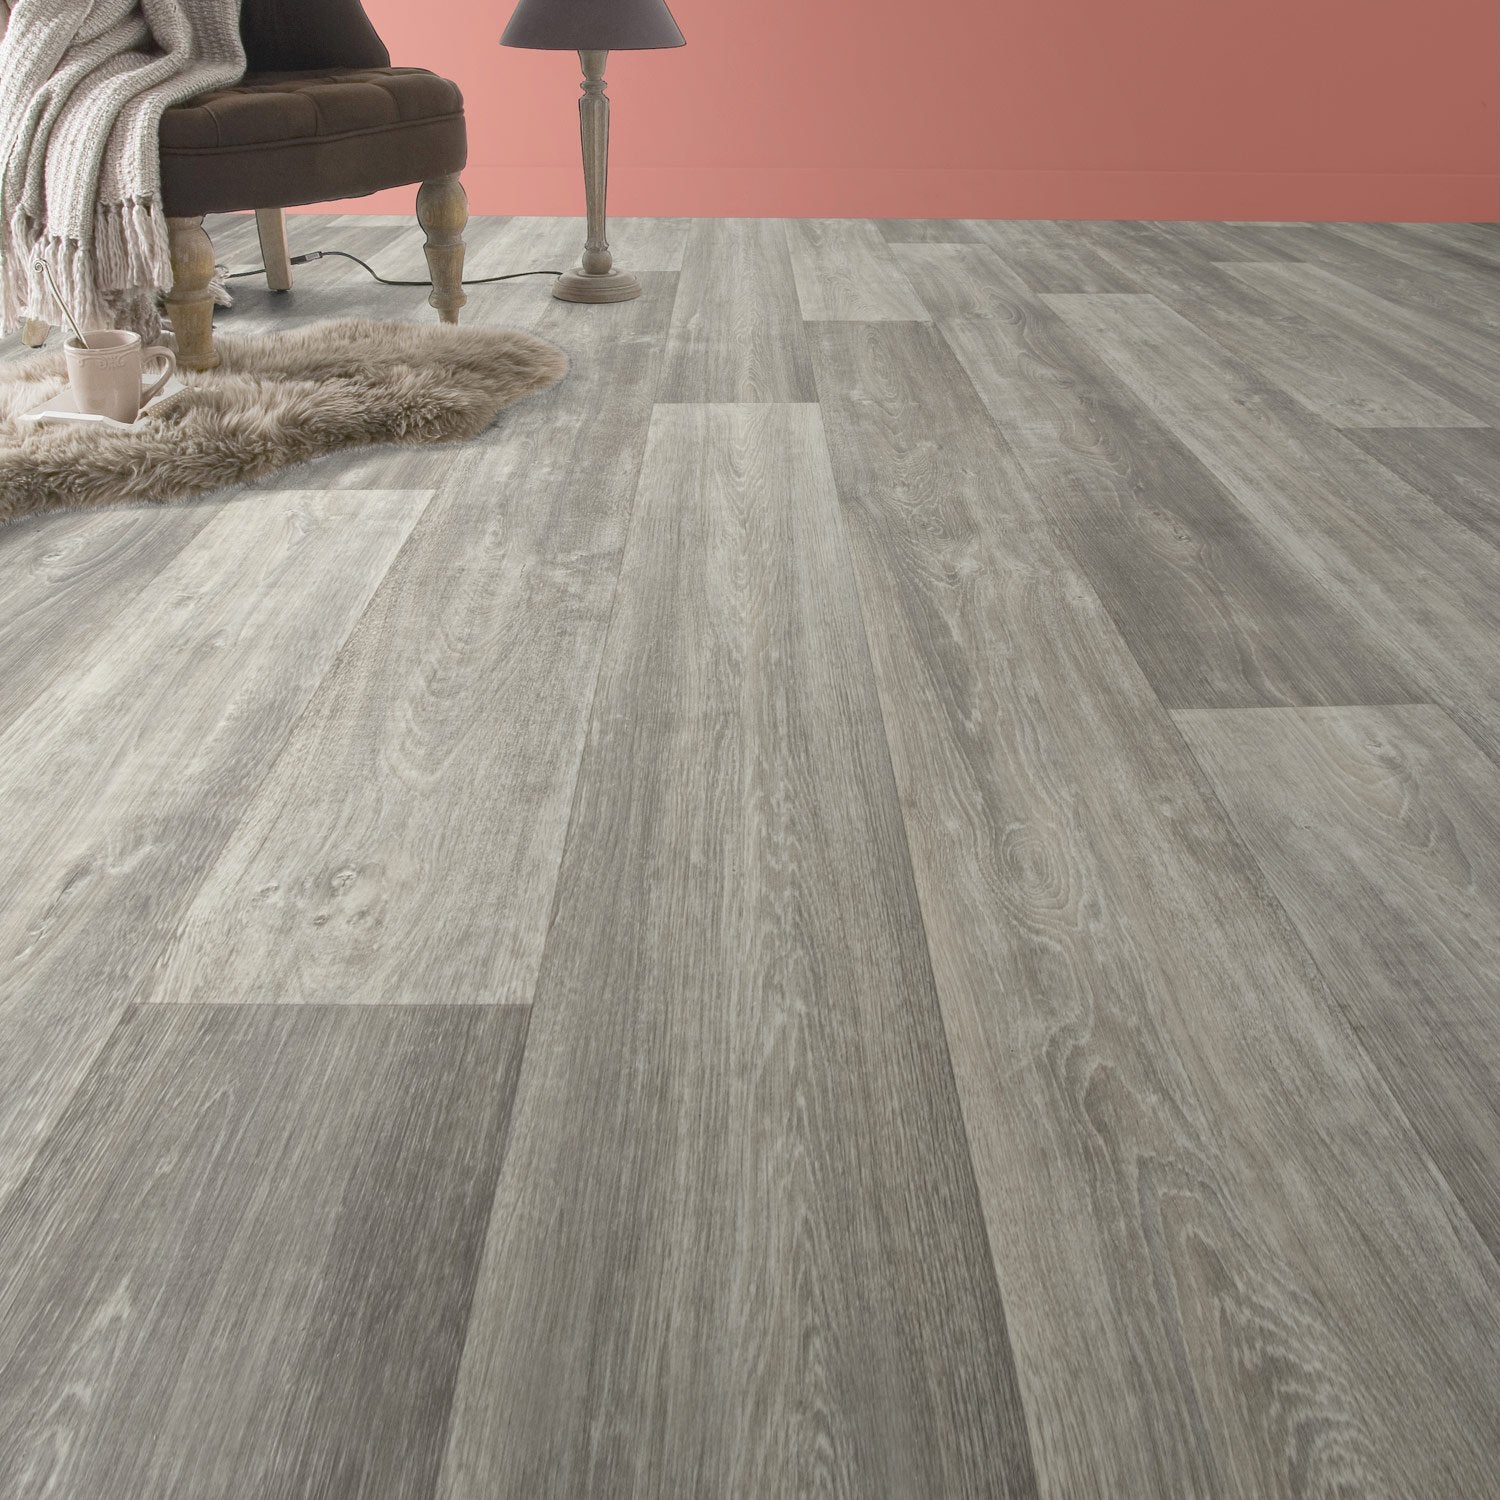 sol pvc gris hudson perle gerflor texline l 4 m leroy merlin. Black Bedroom Furniture Sets. Home Design Ideas